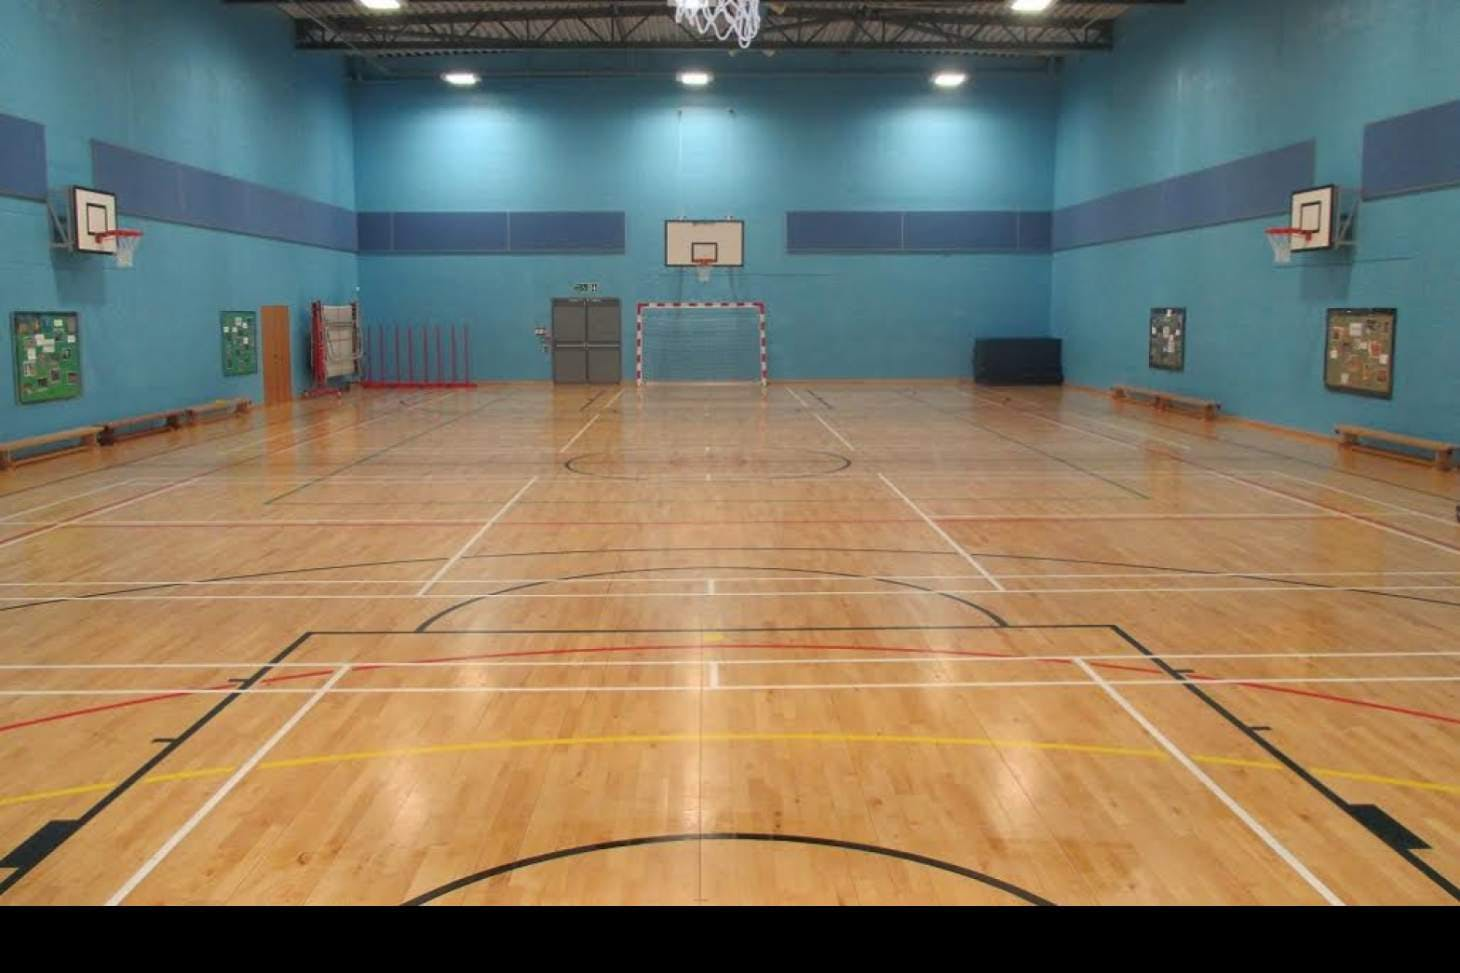 Prendergast Vale School Indoor | Hard badminton court